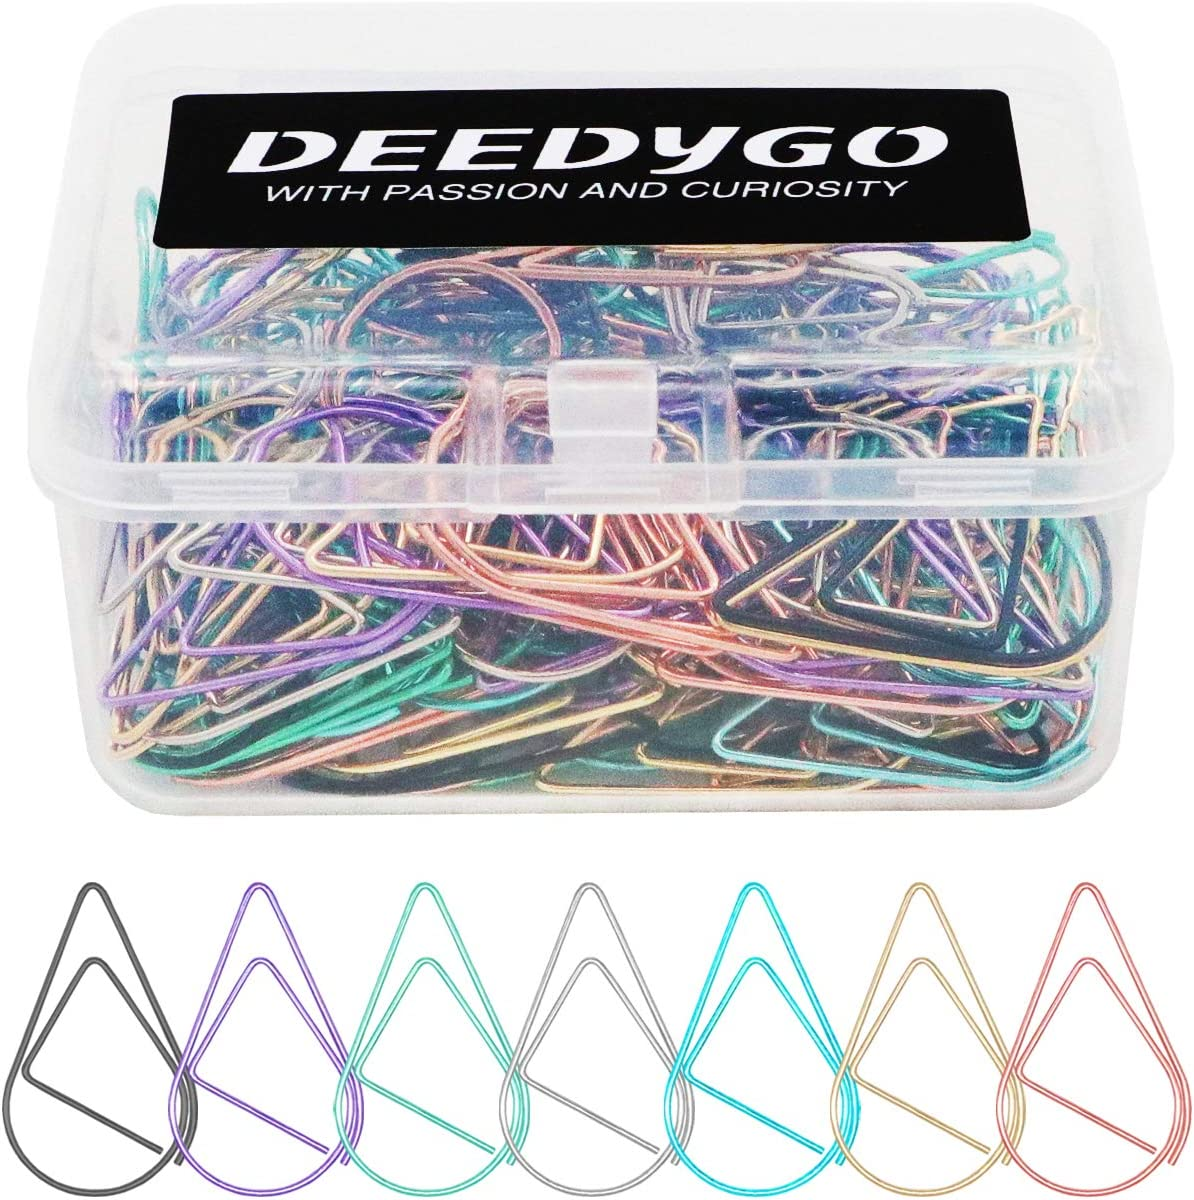 150 Pieces Multicolor Medium Paper Clips, DEEDYGO Smooth Stainless Steel Drop-Shaped Paper Clips for Office Supplies Wedding Women Girls Kids Students (1.3 inch / 33 mm)